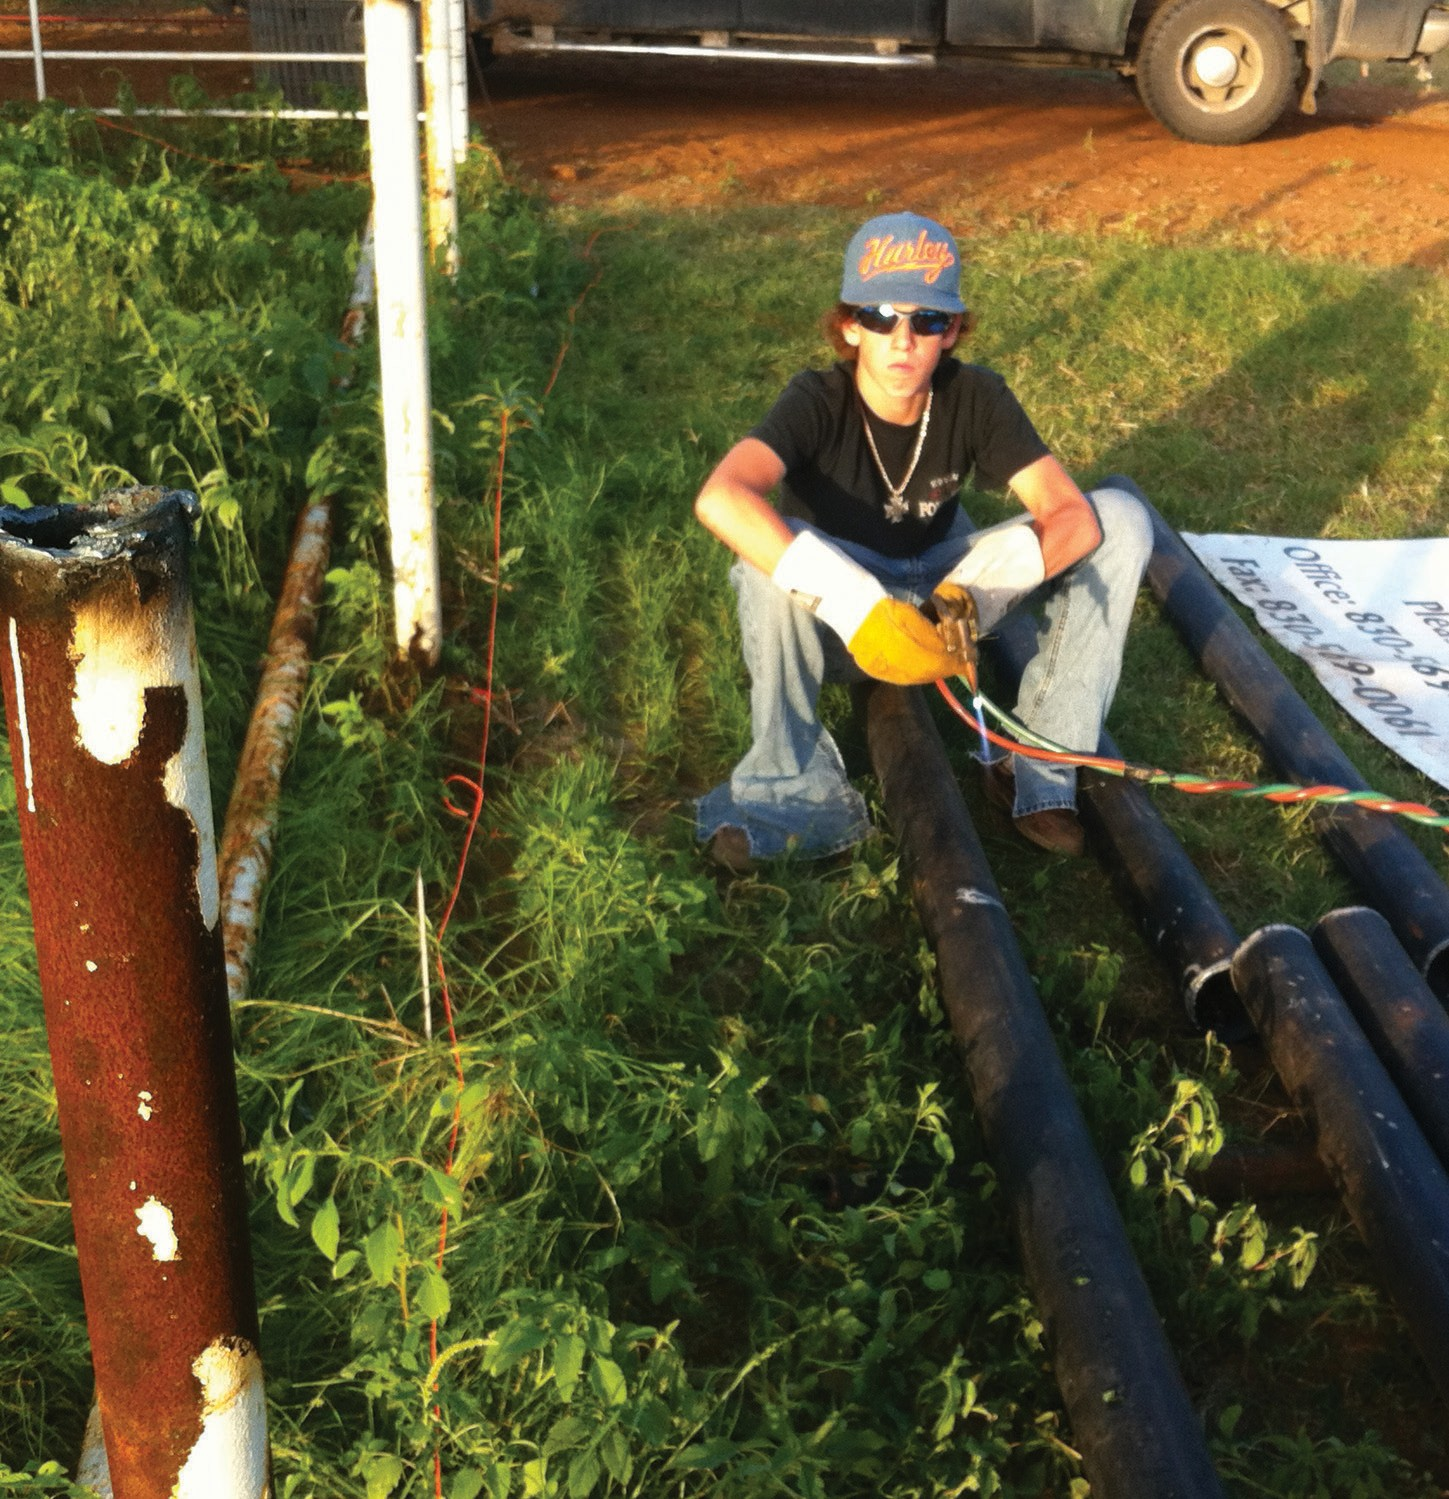 16-year-old Adam Rice, son of Pleasanton Young Farmer Randy Rice and Shelley Rice is welding fence pipe to prepare the rodeo grounds for the PYF Cowboy of the Year Rodeo and Festival, August 16 & 17. A barbeque cook-off, chicken roping, washer tournament and of course, rodeos and dances are all slated for the two-day fest. The naming of the Cowboy of the Year and induction of the South Texas Cowboy Hall of Fame will happen on Friday night at 7:30 p.m. Gary P. Nunn will entertain on Friday and Steve Wariner will headline on Saturday with Bracken Hale Band opening. Tickets are available at Paisley's Boutique, 307 2nd St. Pleasanton.